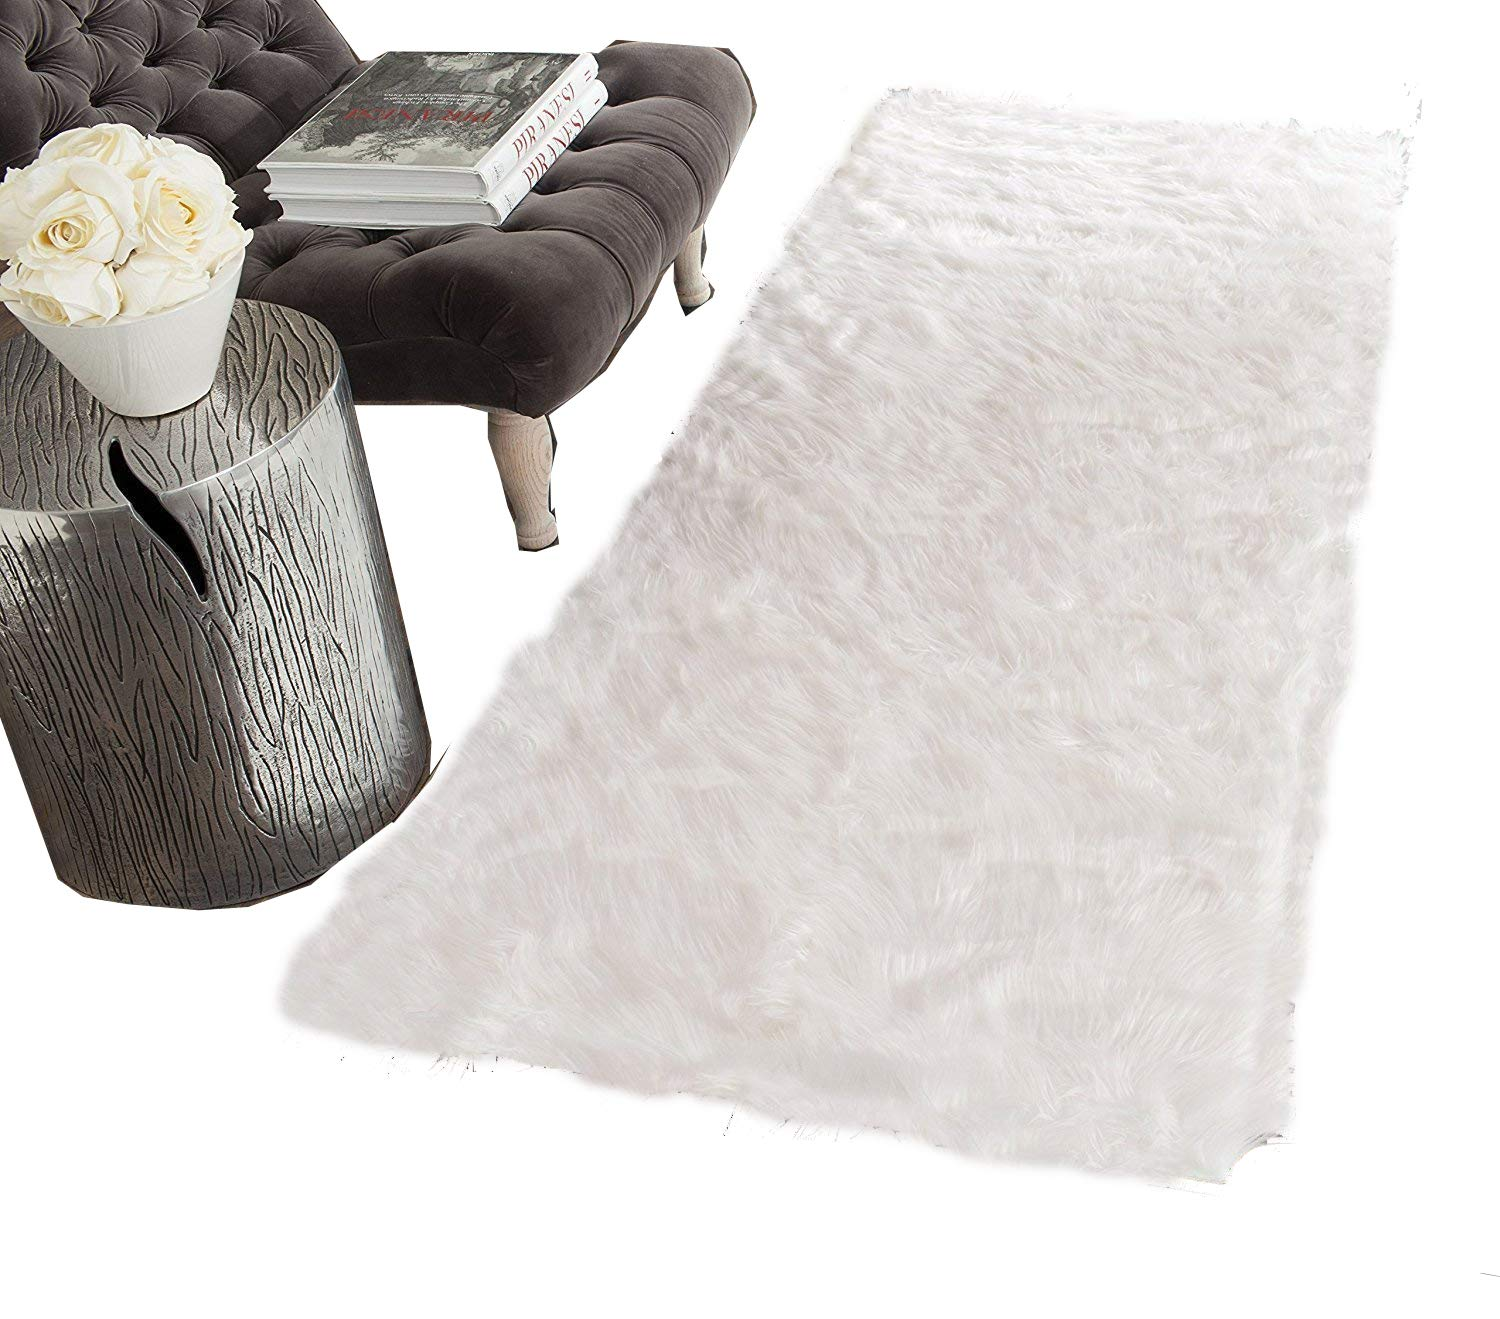 HUAHOO White Faux Sheepskin Area Rug Chair Cover Seat Pad Plain Shaggy Area Rugs For Bedroom Sofa Floor Ivory White (2' x 3' Sofa Mat)